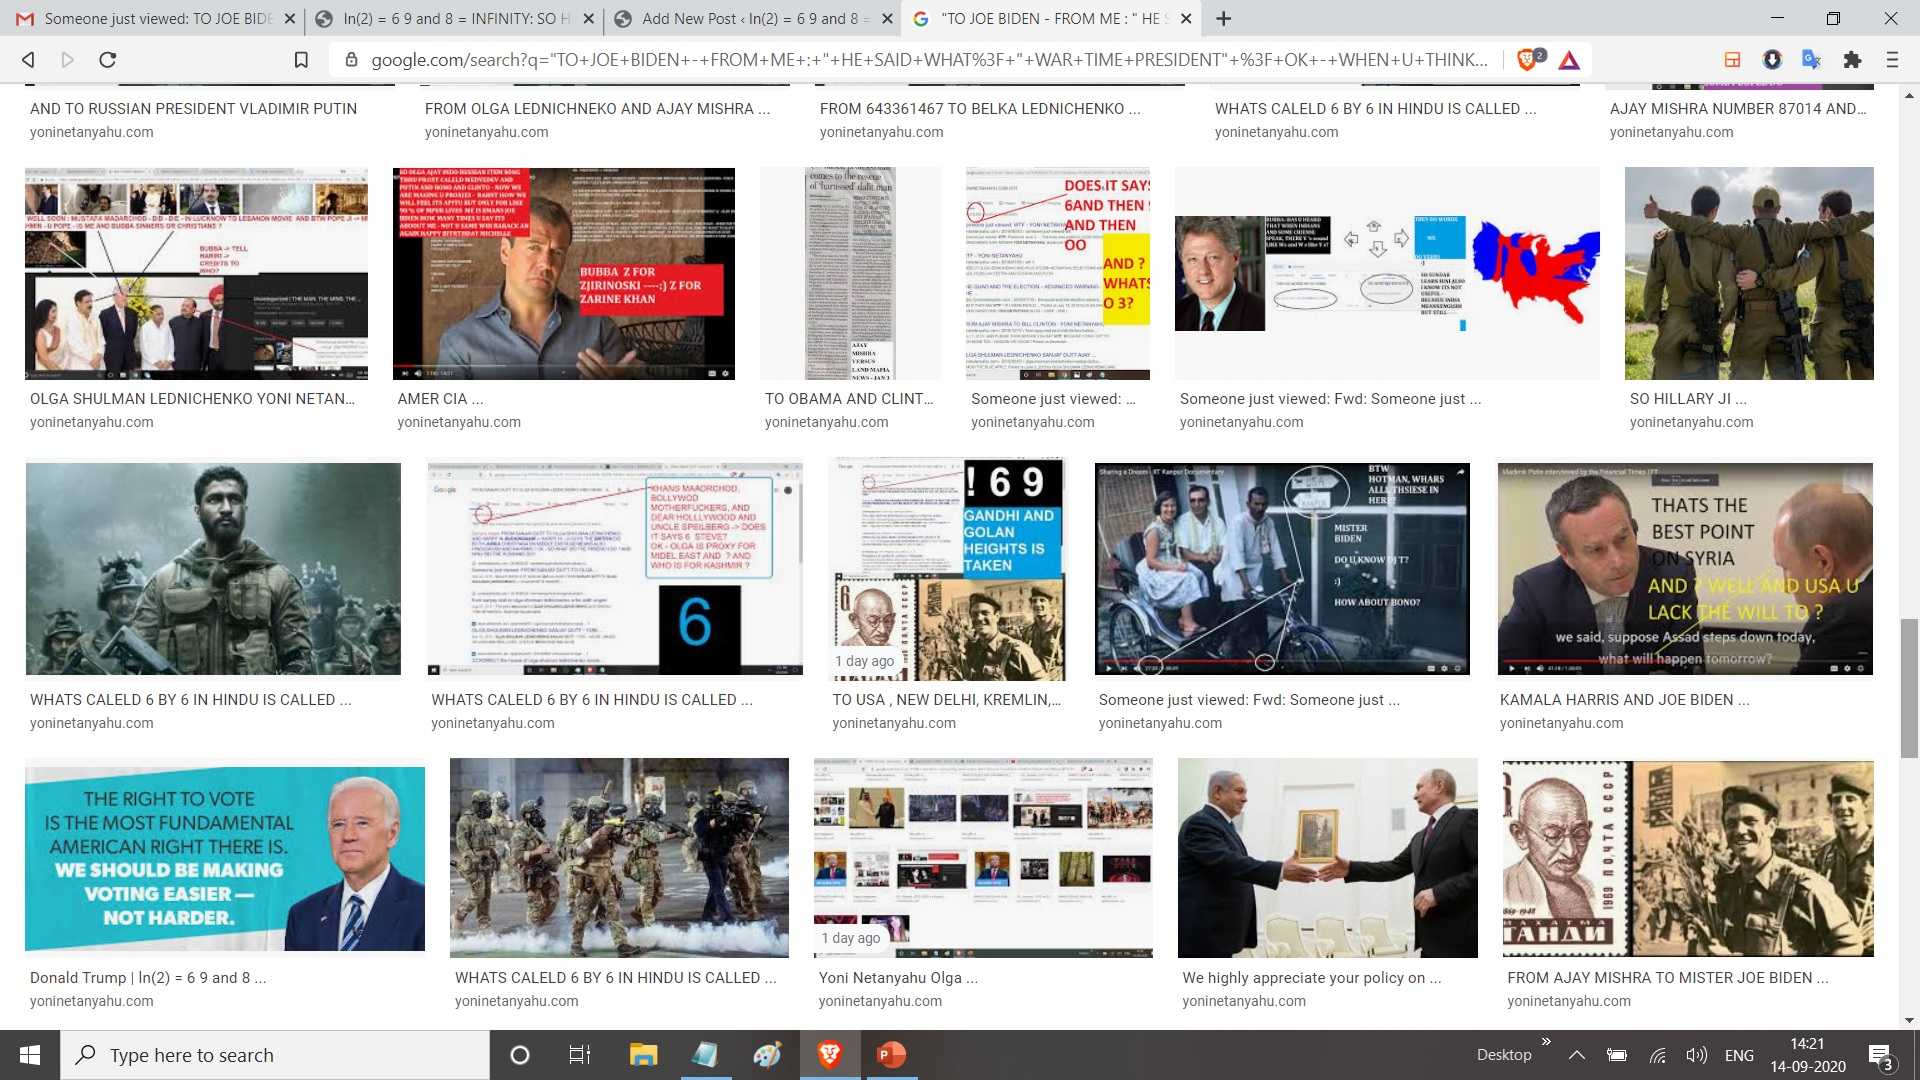 """""""TO JOE BIDEN - FROM ME : """" HE SAID WHAT? """" WAR TIME PRESIDENT"""" ? OK - WHEN U THINK WAR DO U THINK MILITARY? OK.. DO U SEE MILITARY NOW? I DONT DO U? DOES MILITARY BUILD HOSPITALS IN AFGHAN AND BAGHDAD ? - OK, WHY ARENT THEY BEING BUILT IN UNITED STATES : YEAH THEY DID BUILD ONE IN WUHAN - IT TOOK THE 2 WEEKS TO BUILD A HOSPITAL : ND RUSSHIA IS FOLLOWING SUIT TOO - WHY ARENT U - WHEN U ARE AT WAR ?"""""""